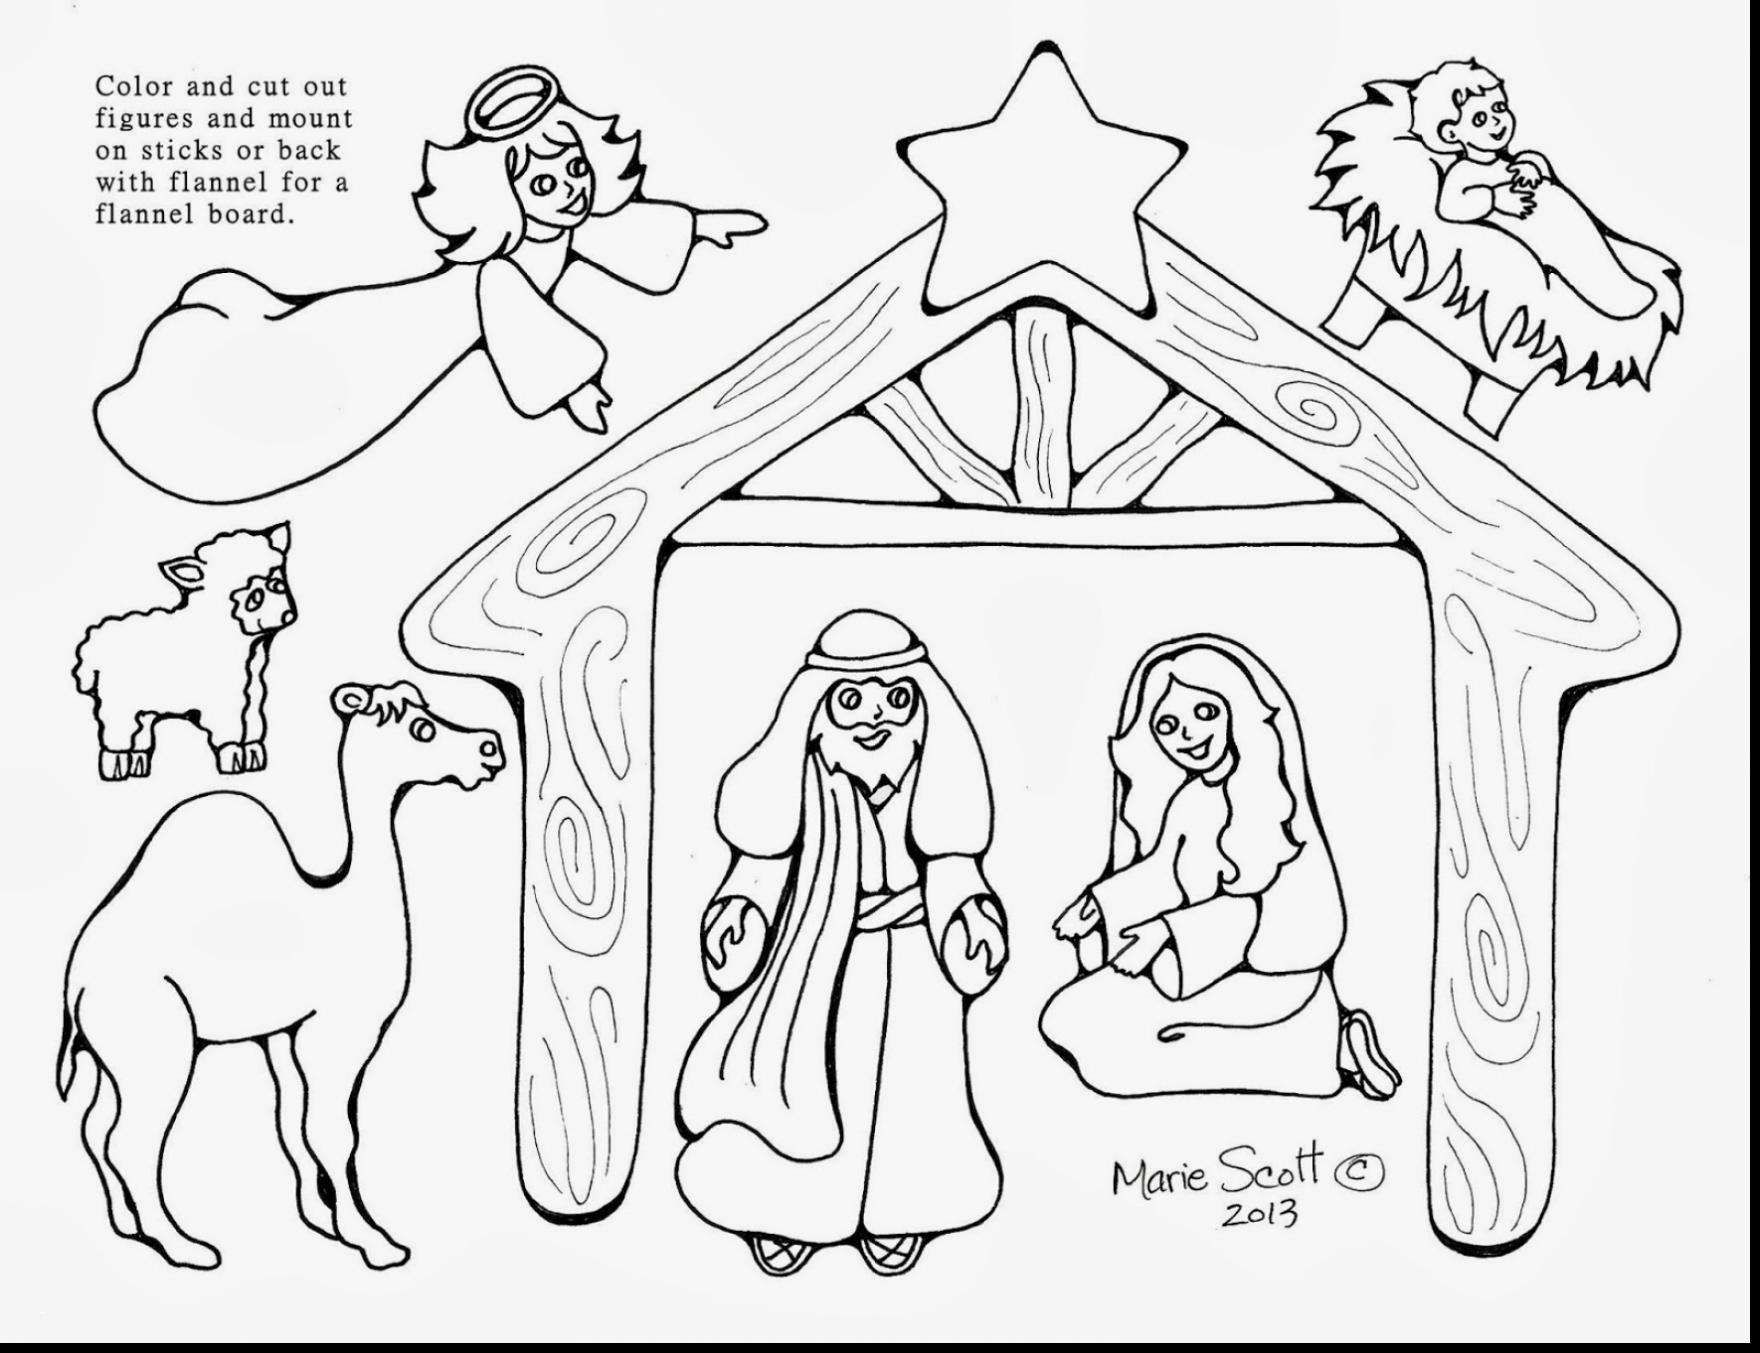 Free Printable Coloring Pages Of Nativity Scene Printable Coloring Page For Kids Jesus Coloring Pages Nativity Coloring Pages Nativity Coloring